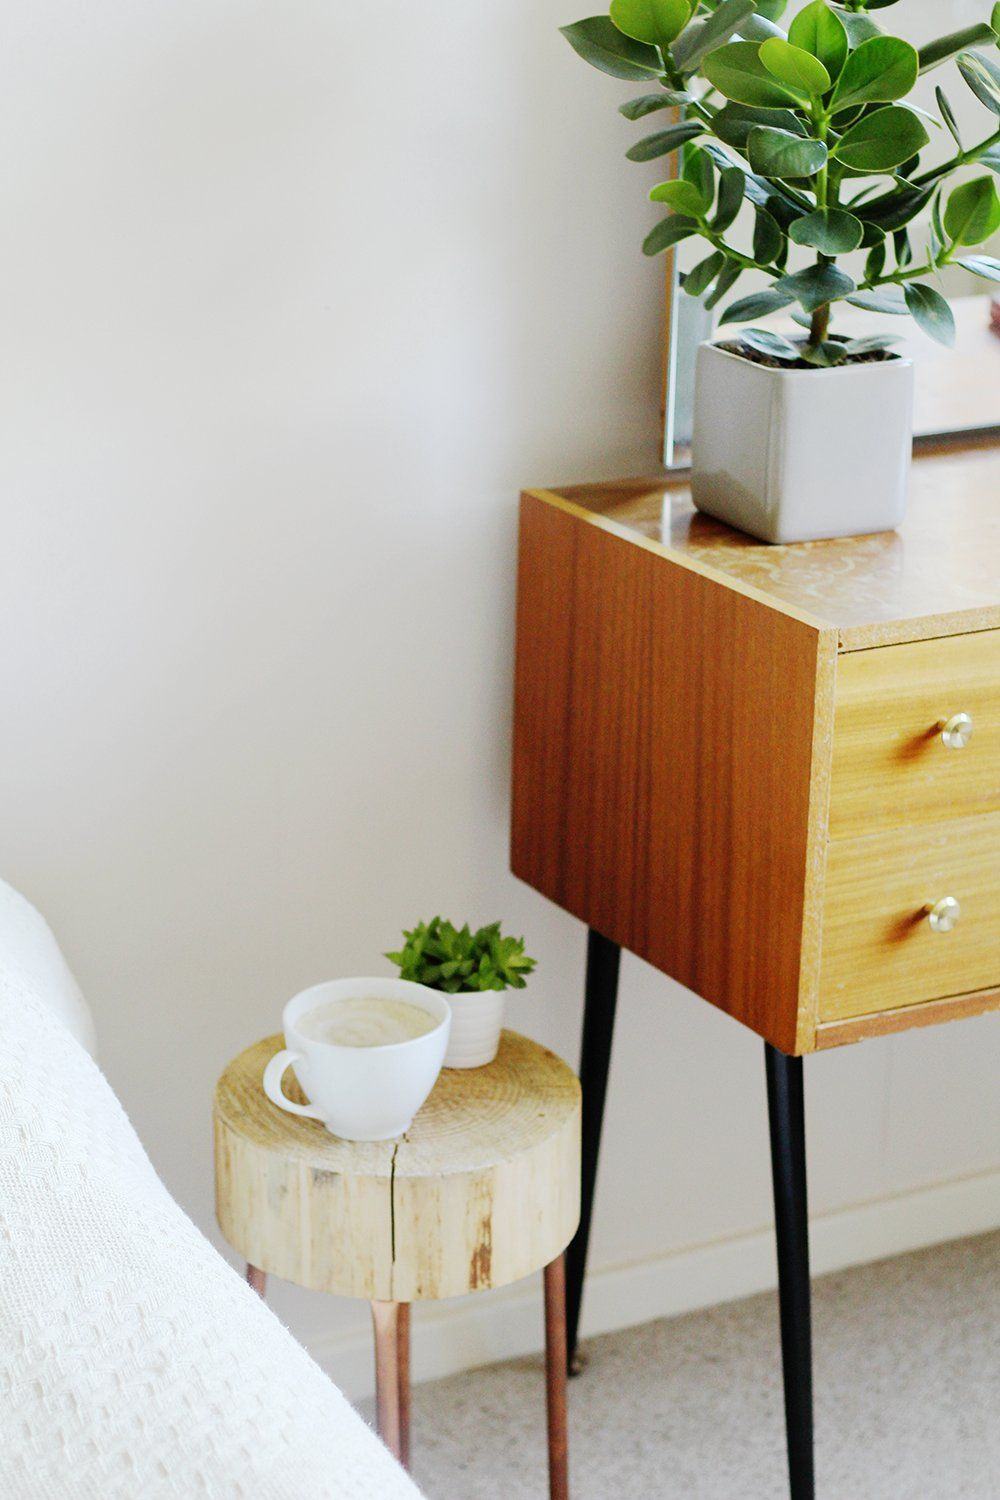 Best Small Space Solutions 11 Space Saving Nightstand Ideas 400 x 300